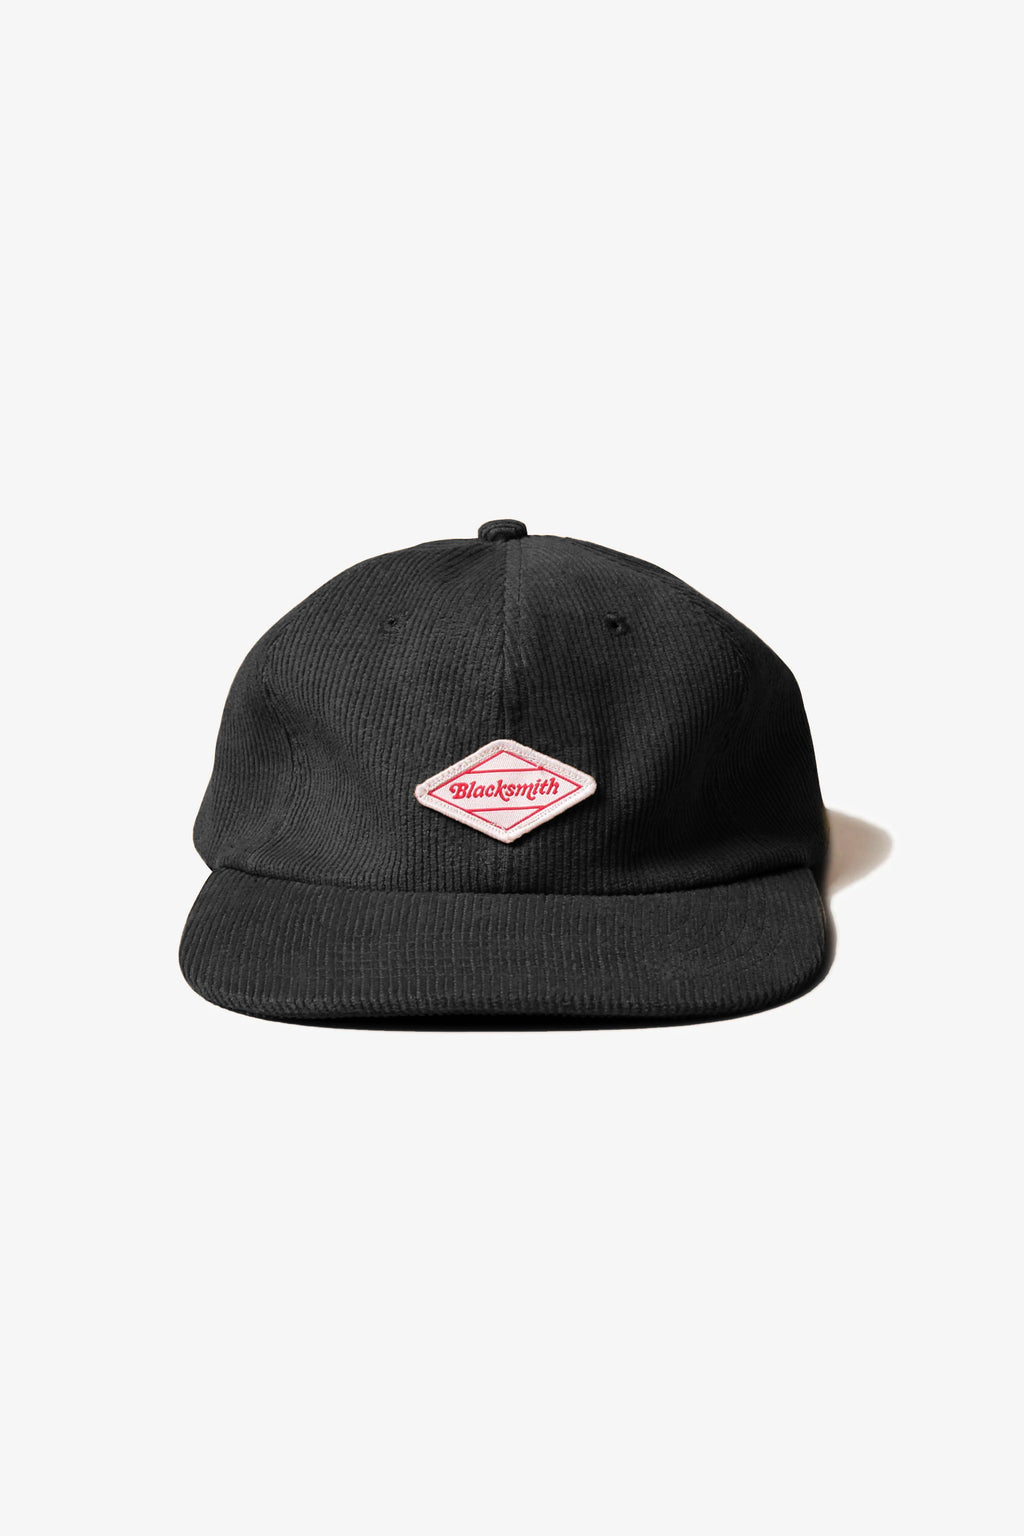 Blacksmith - Corduroy Everyday Cap - Black